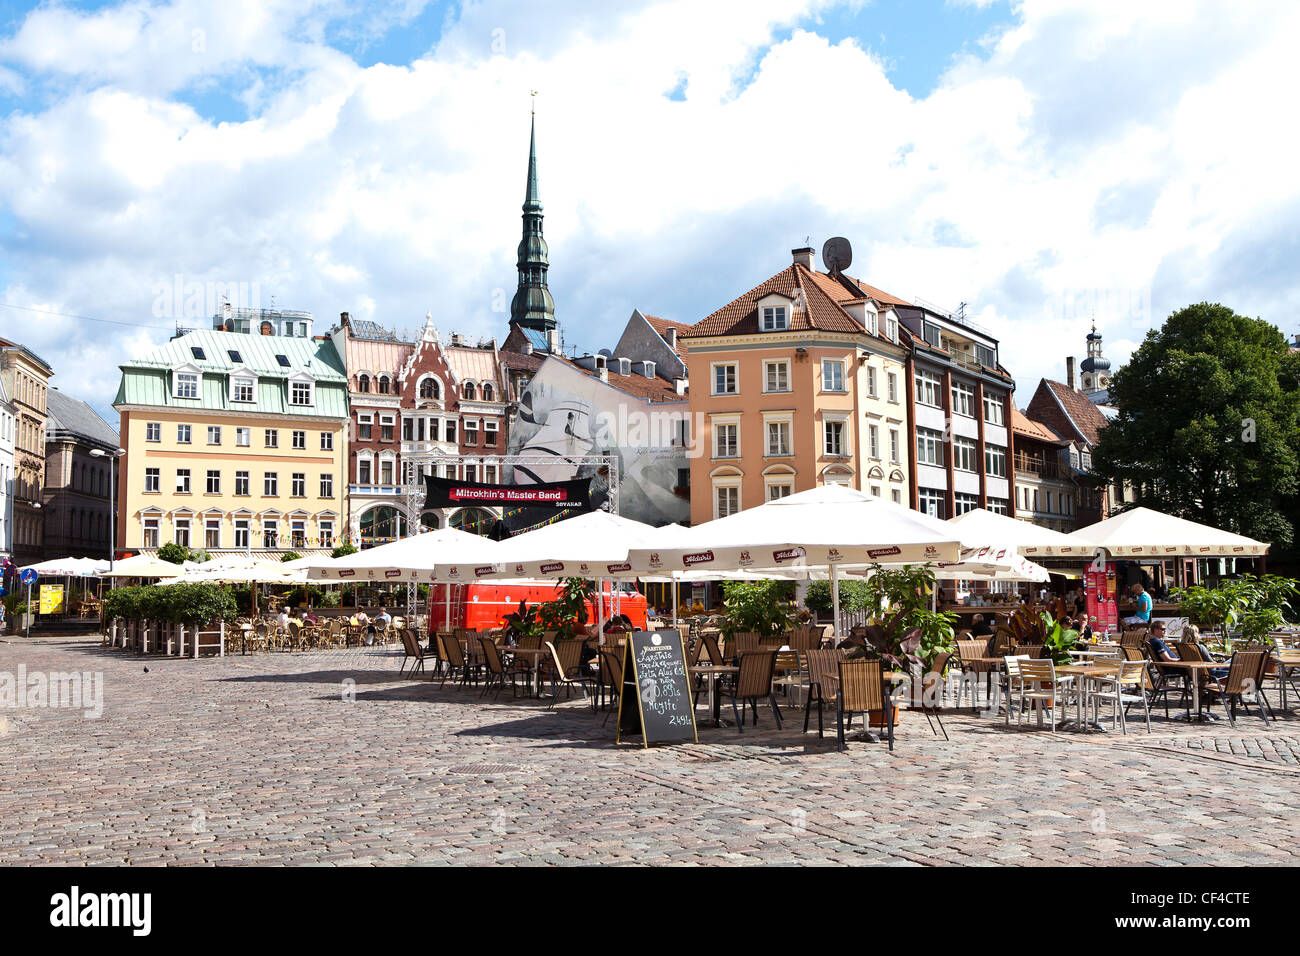 Outdoor cafes in Dome Square in old town Riga with the spire of St. Peter's Church in background. - Stock Image